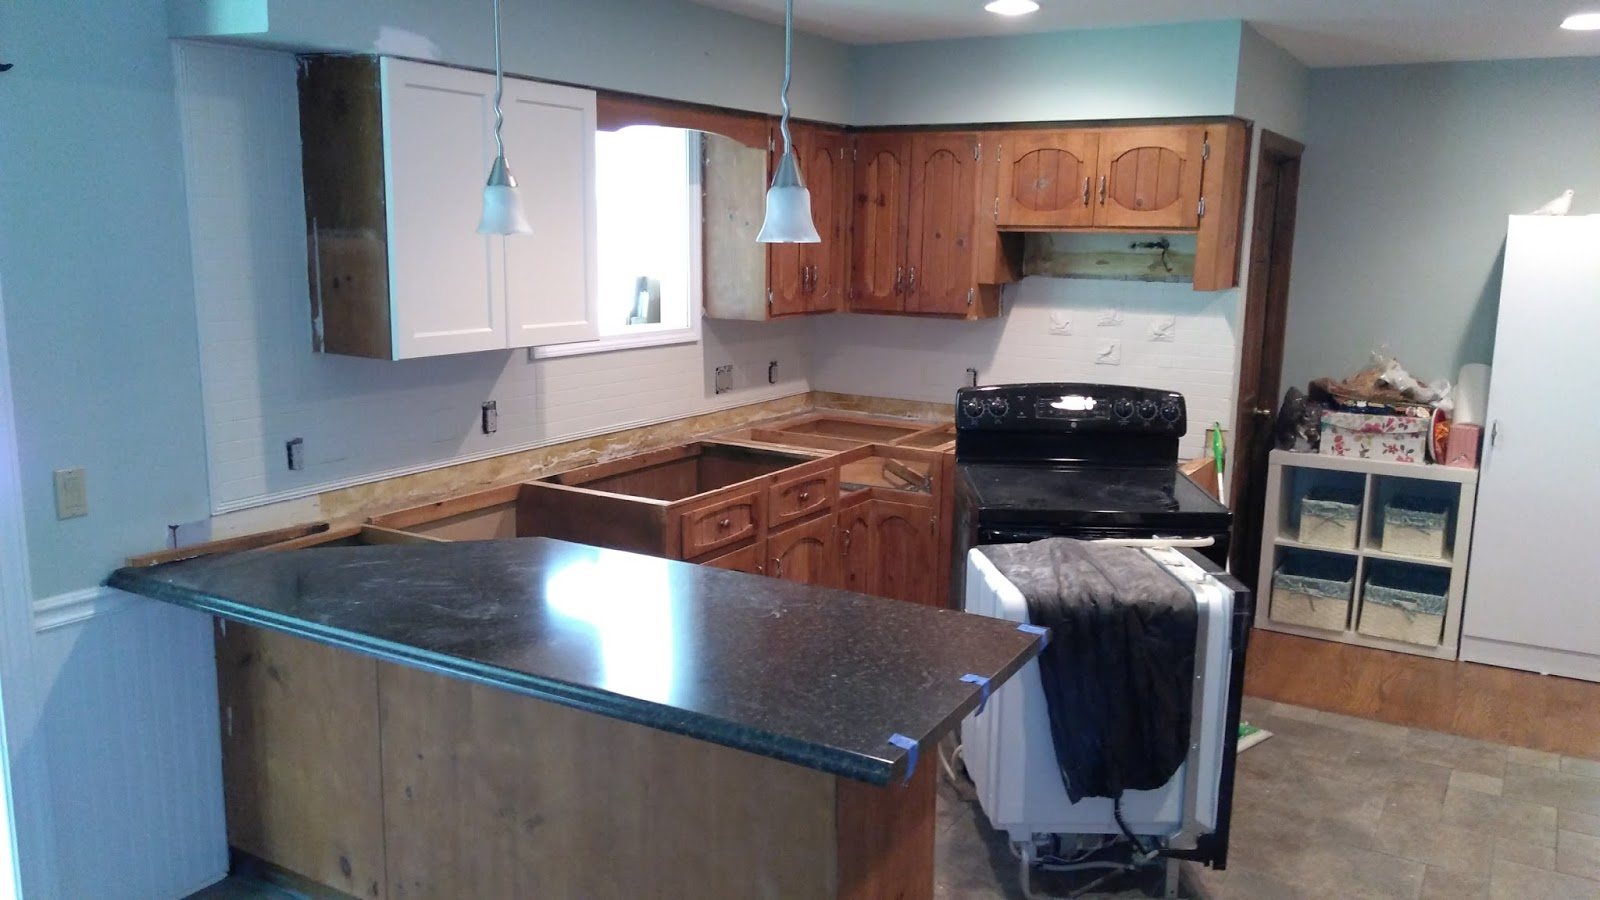 Bob's Kitchen Cabinets Refacing Charlotte NC